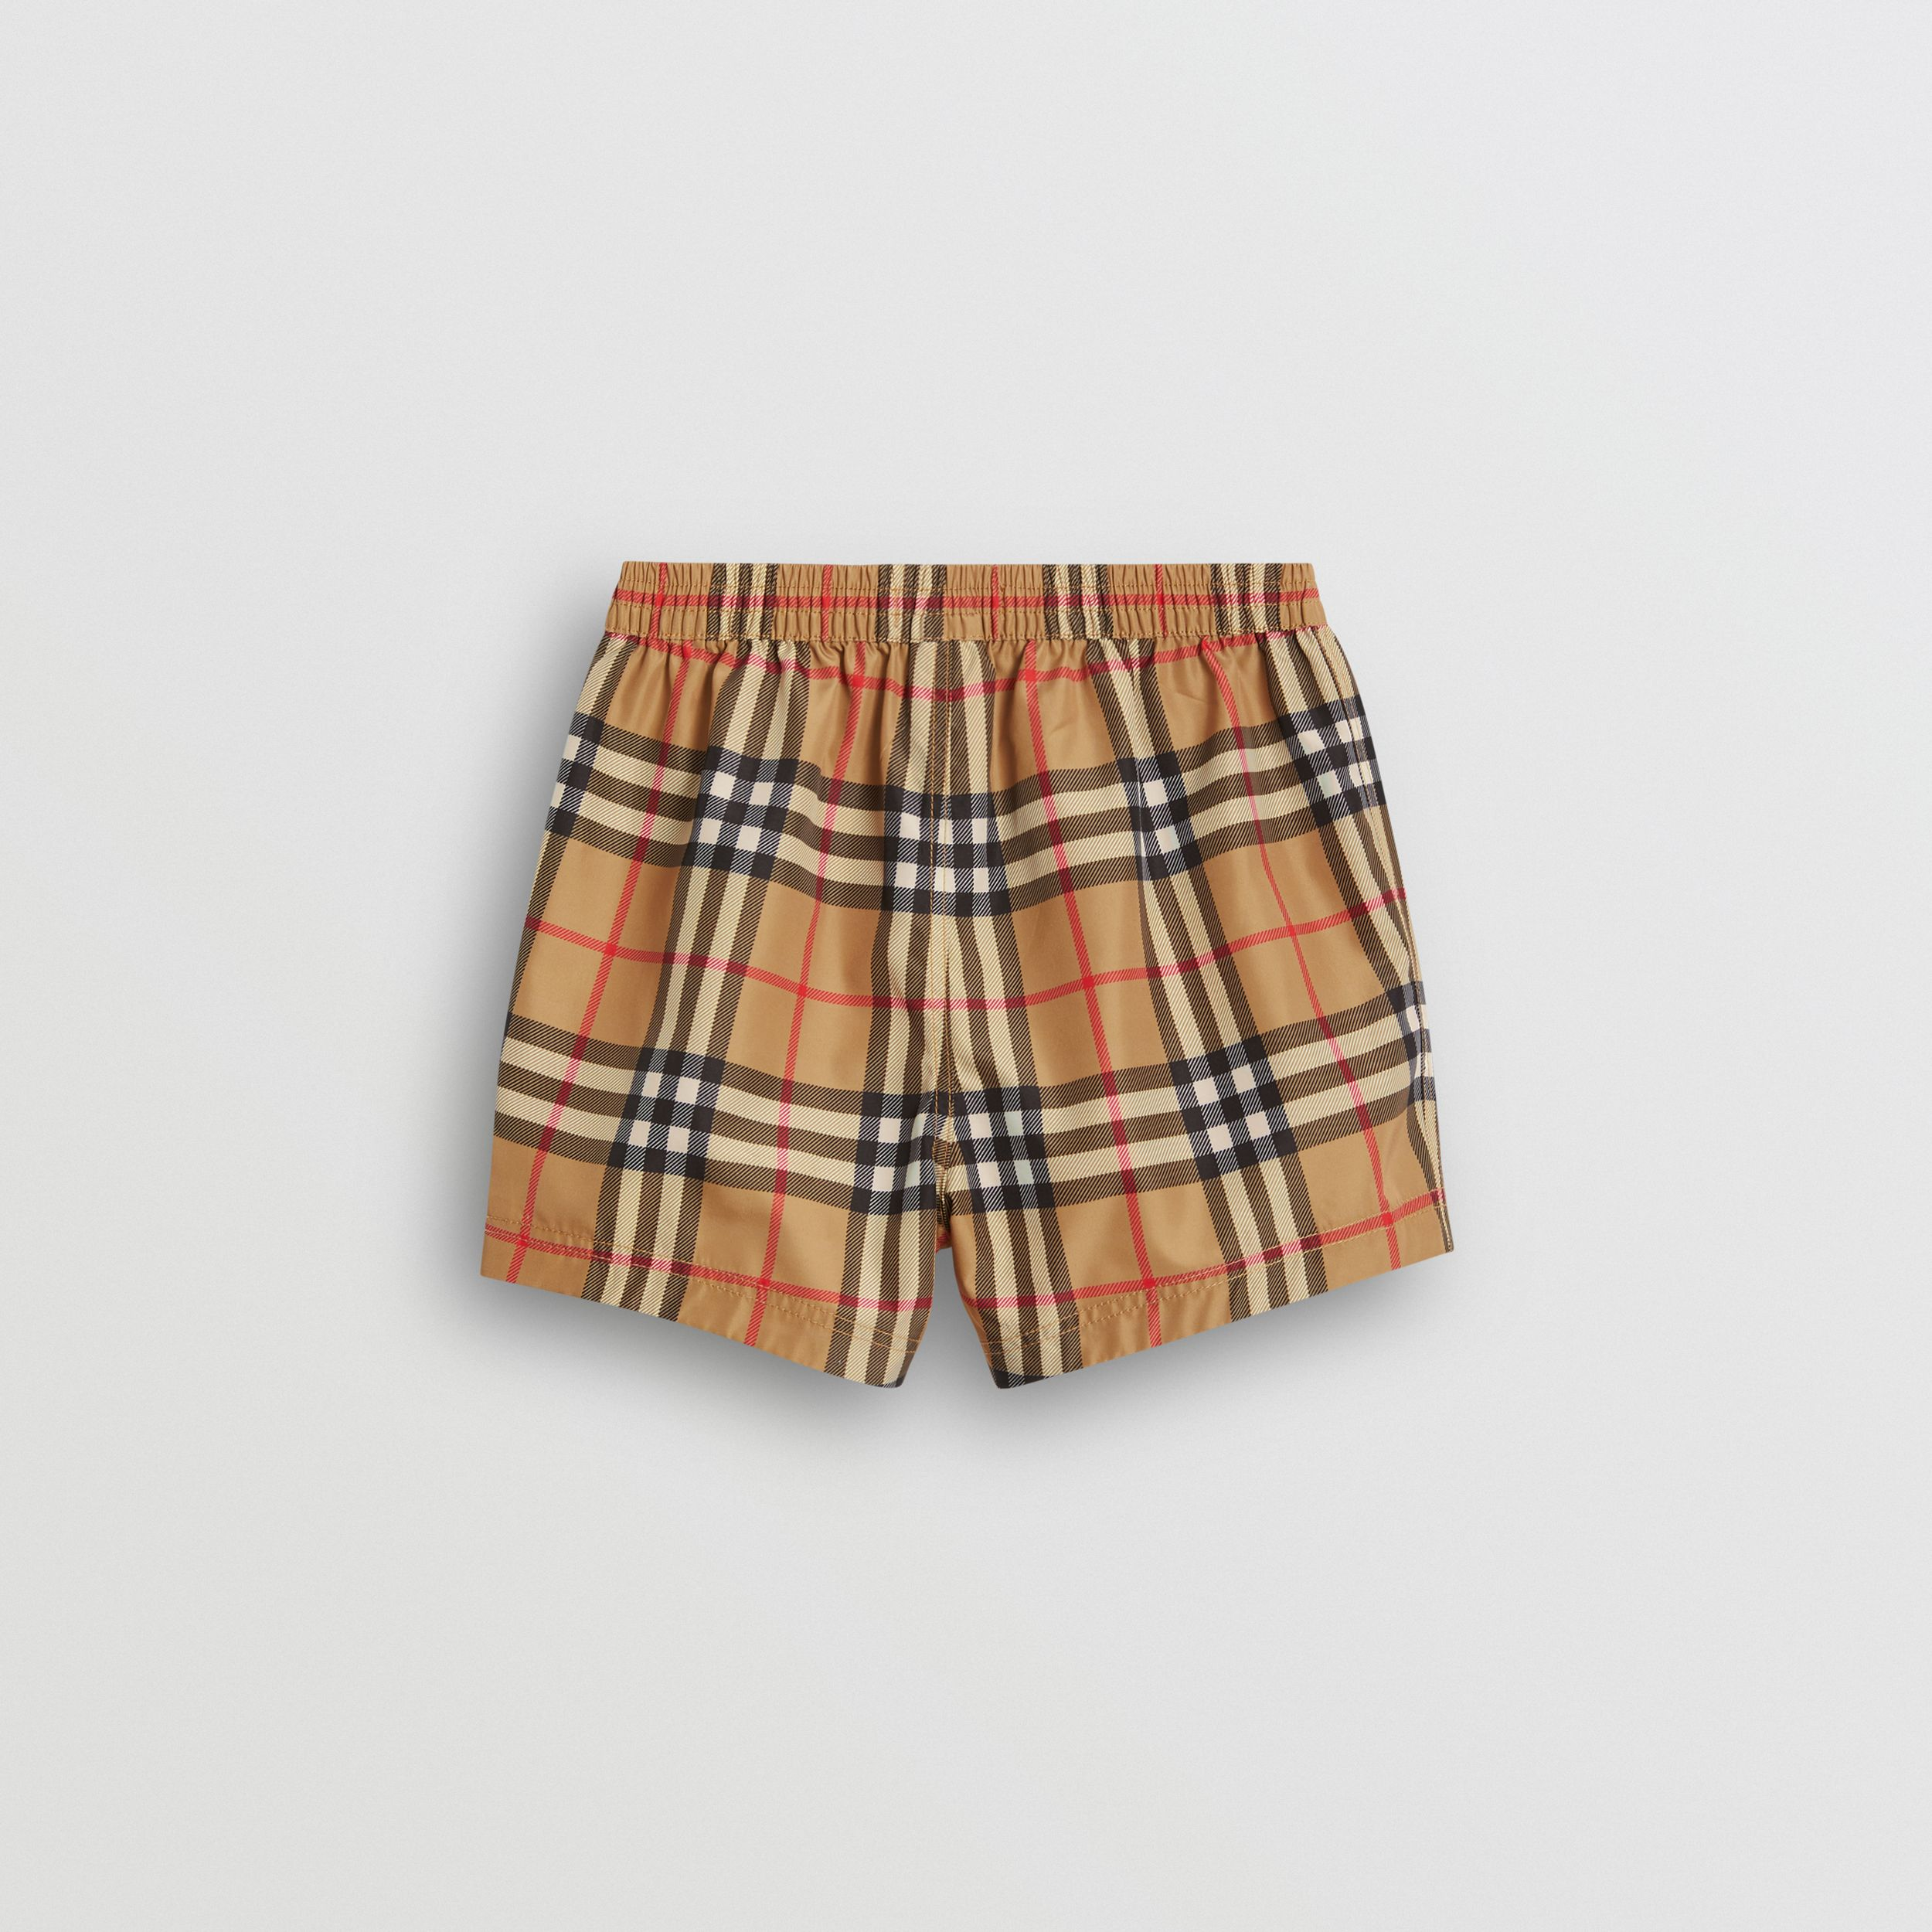 Short de bain à motif check (Jaune Antique) - Enfant | Burberry - 4